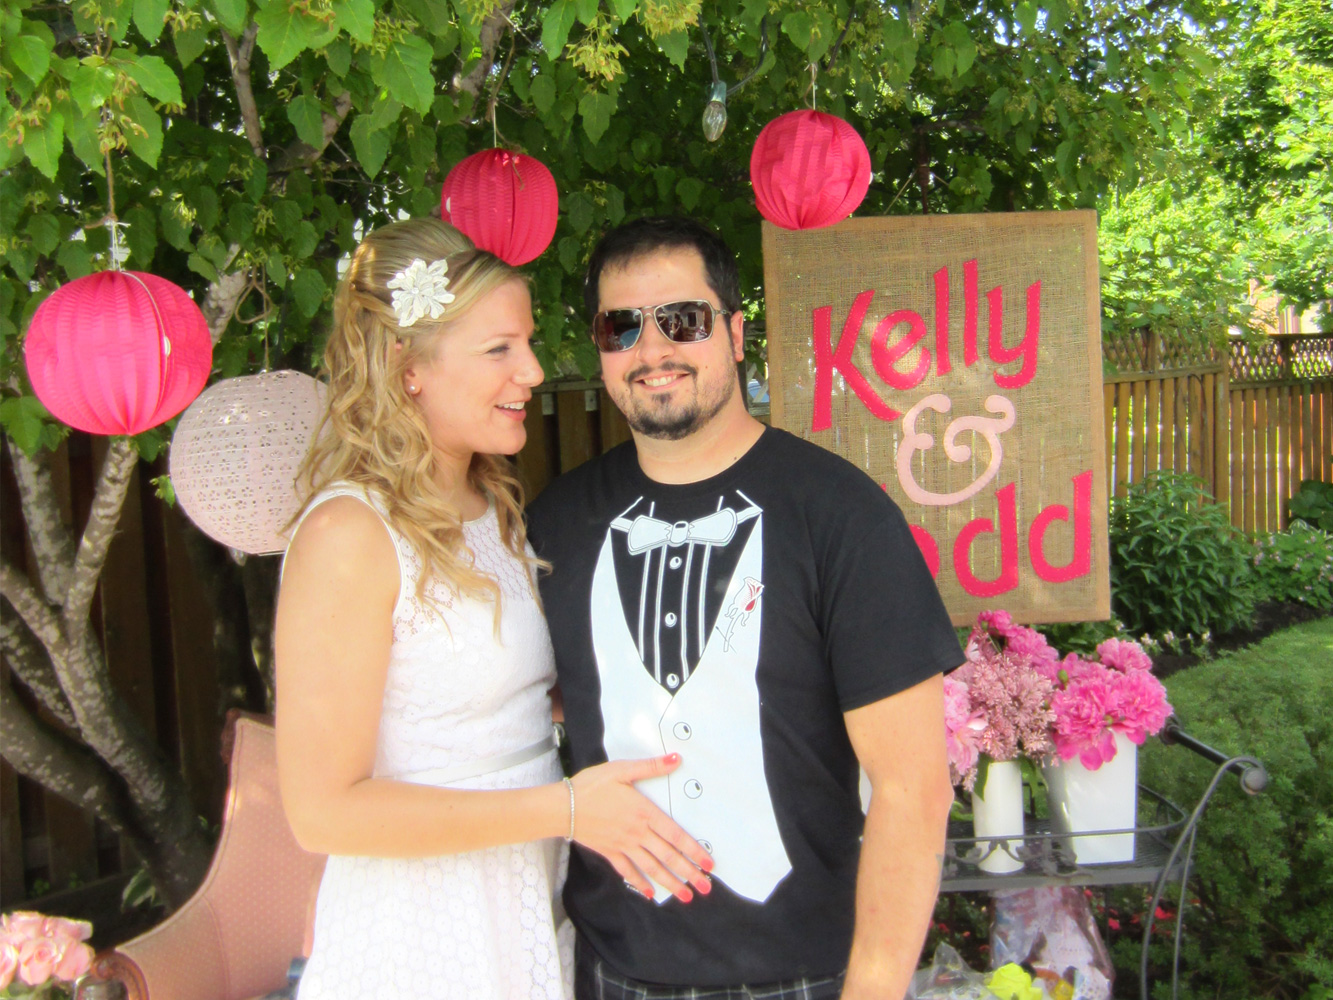 kelly+todd-shower03.jpg